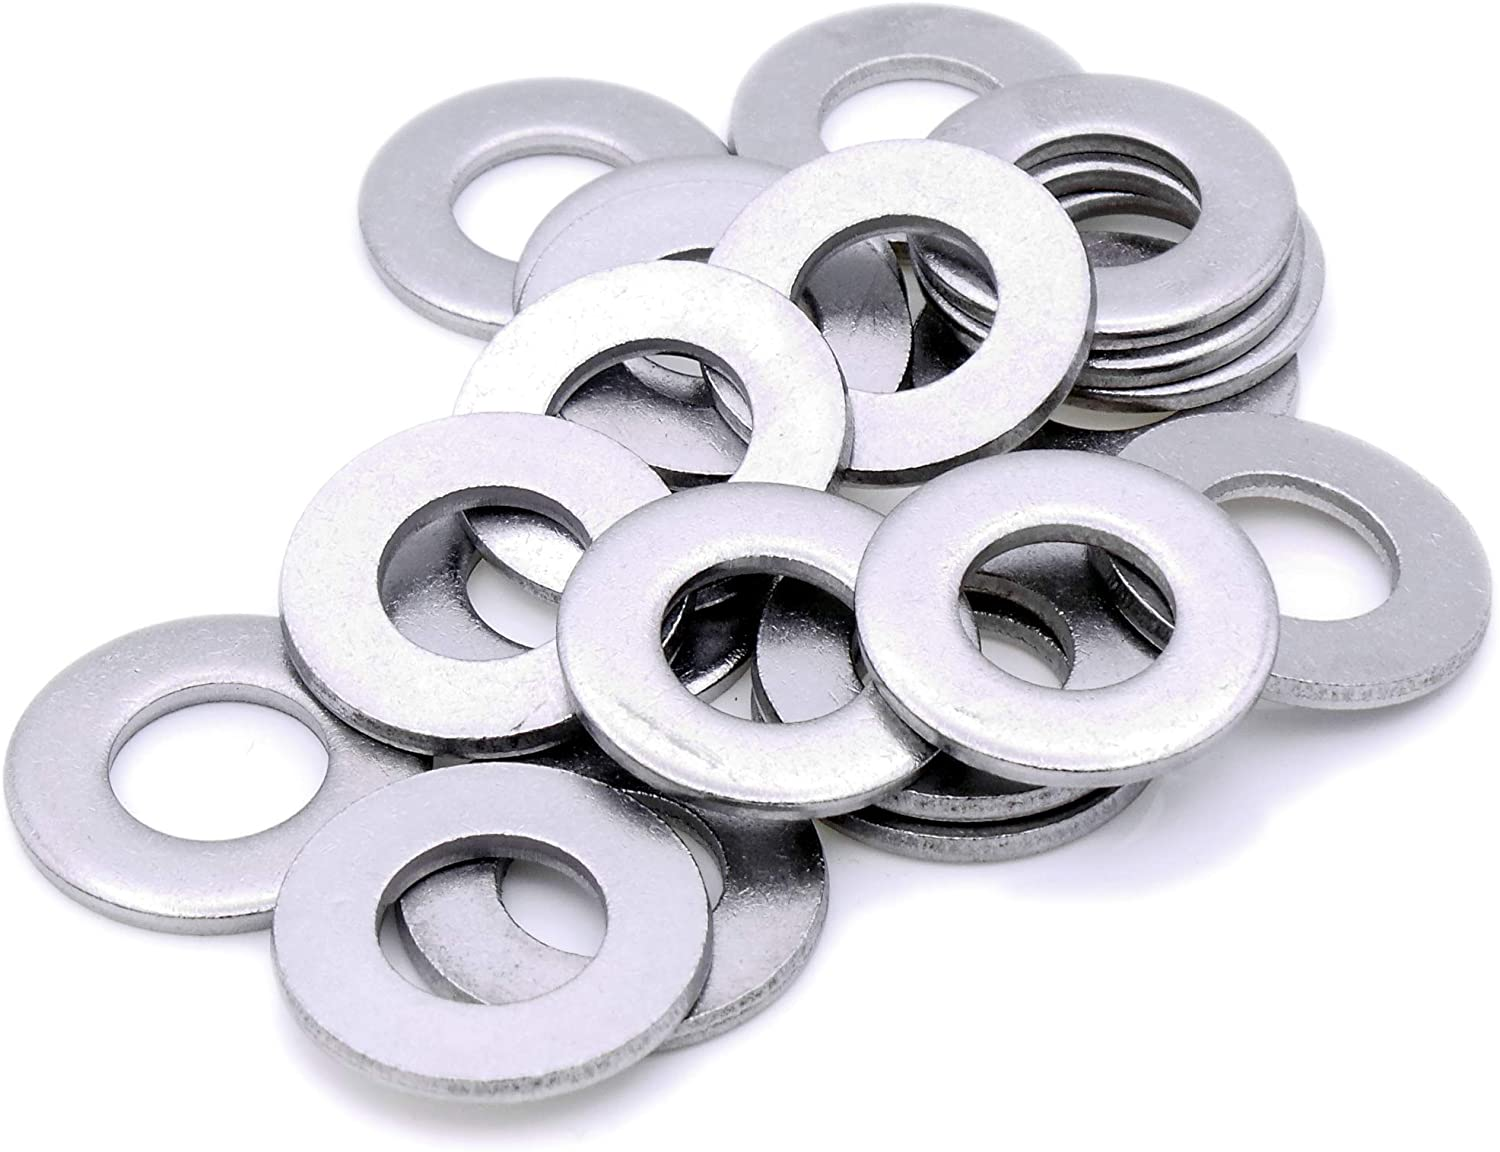 6mm M6 Flat Washer Heavy Duty A2 Pack of 20 - Stainless Steel